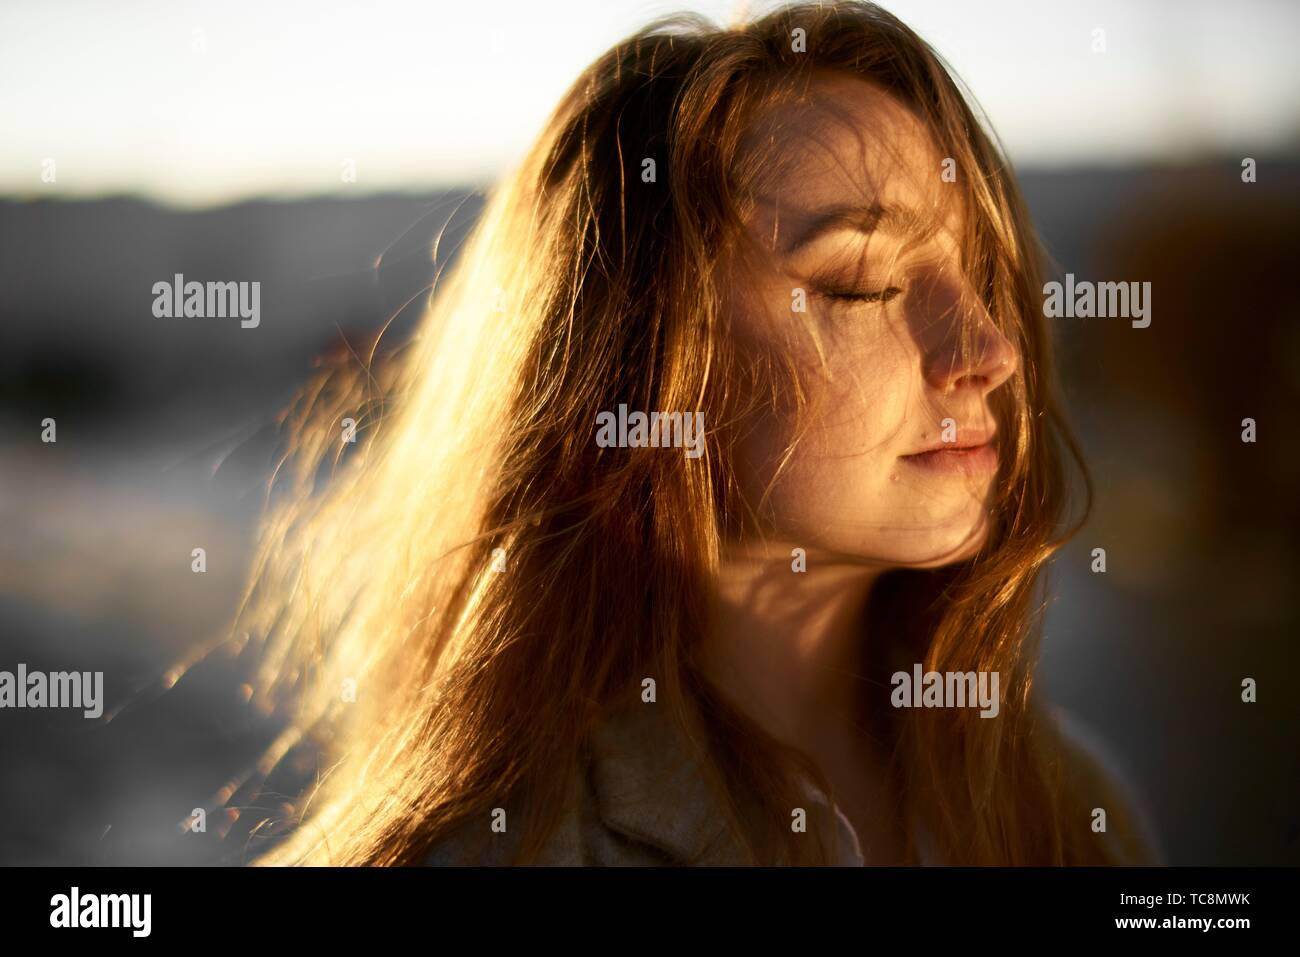 young emotive woman outdoors in warm sunlight, closed eyes, hair blowing in wind, joy, in Cottbus, Brandenburg, Germany - Stock Image